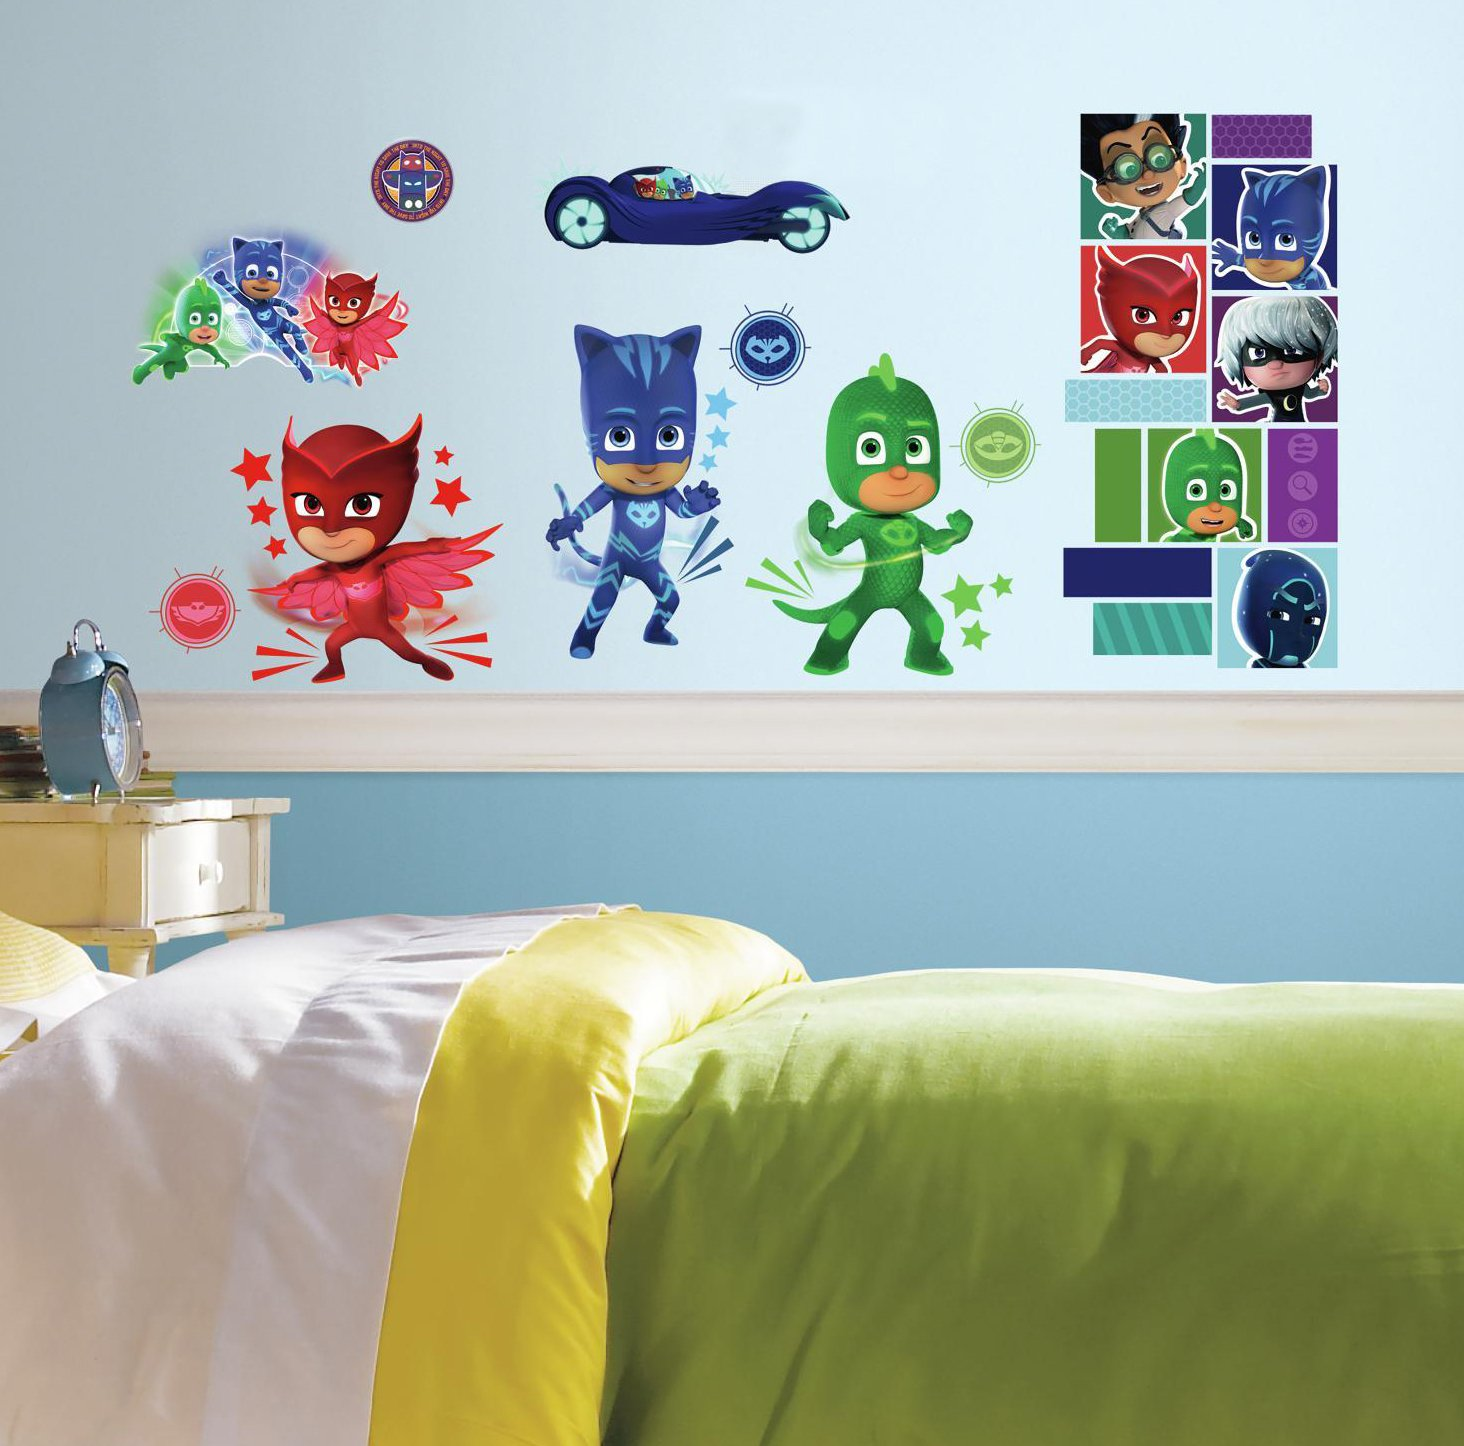 223 & RoomMates PJ Masks Peel And Stick Wall Decals